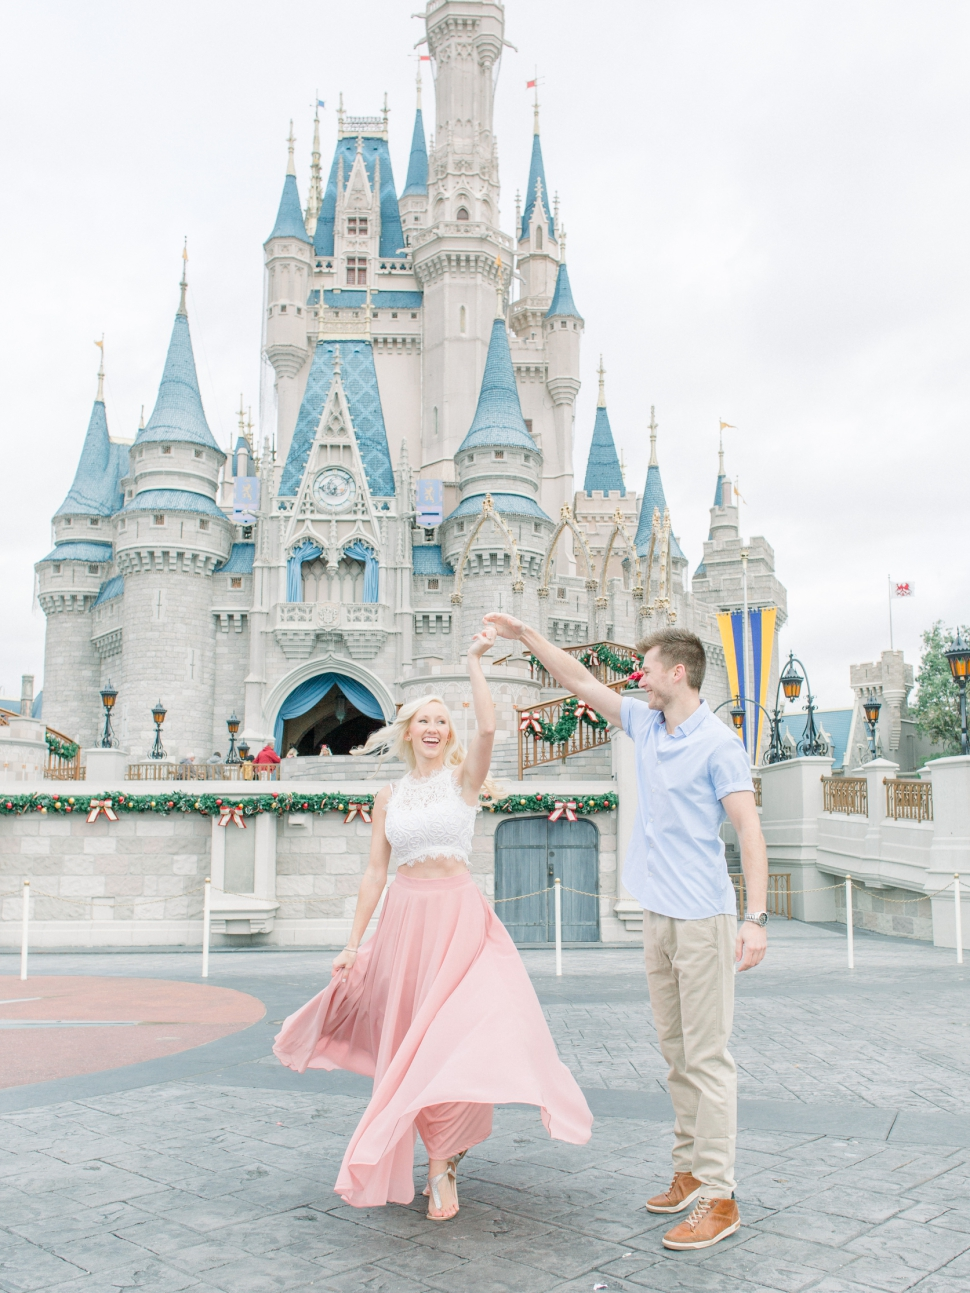 Disney-World-Engagement-Photographer-Cassi-Claire-Disney-World-Orlando-Florida_17.jpg